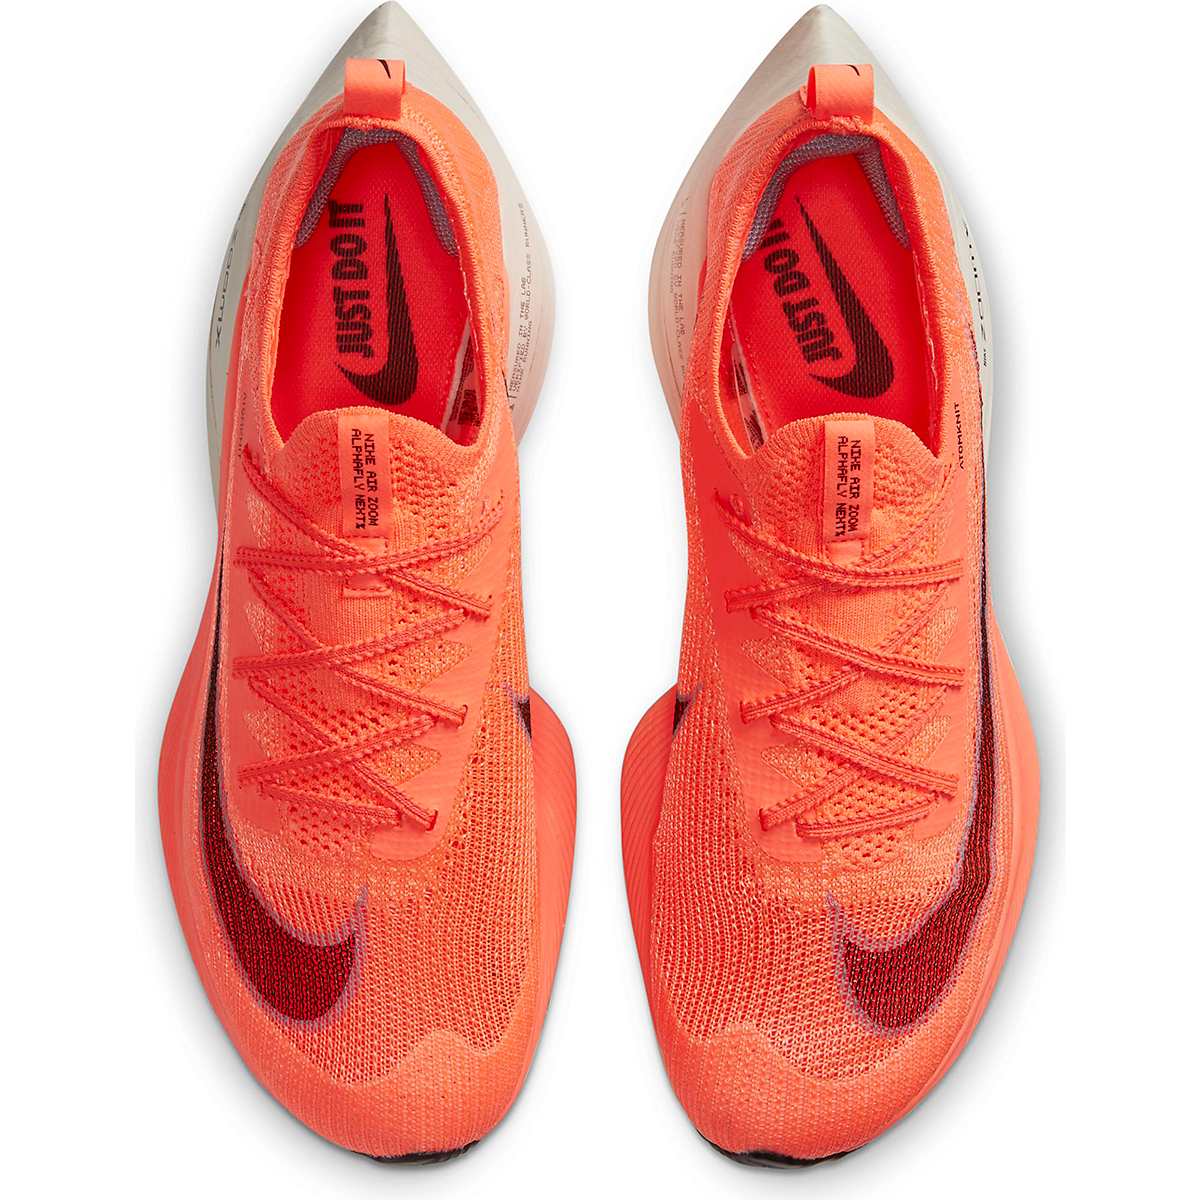 Men's Nike Air Zoom Alphafly NEXT% Running Shoe - Color: Bright Mango/Citron Pulse - Size: 6 - Width: Regular, Bright Mango/Citron Pulse, large, image 3